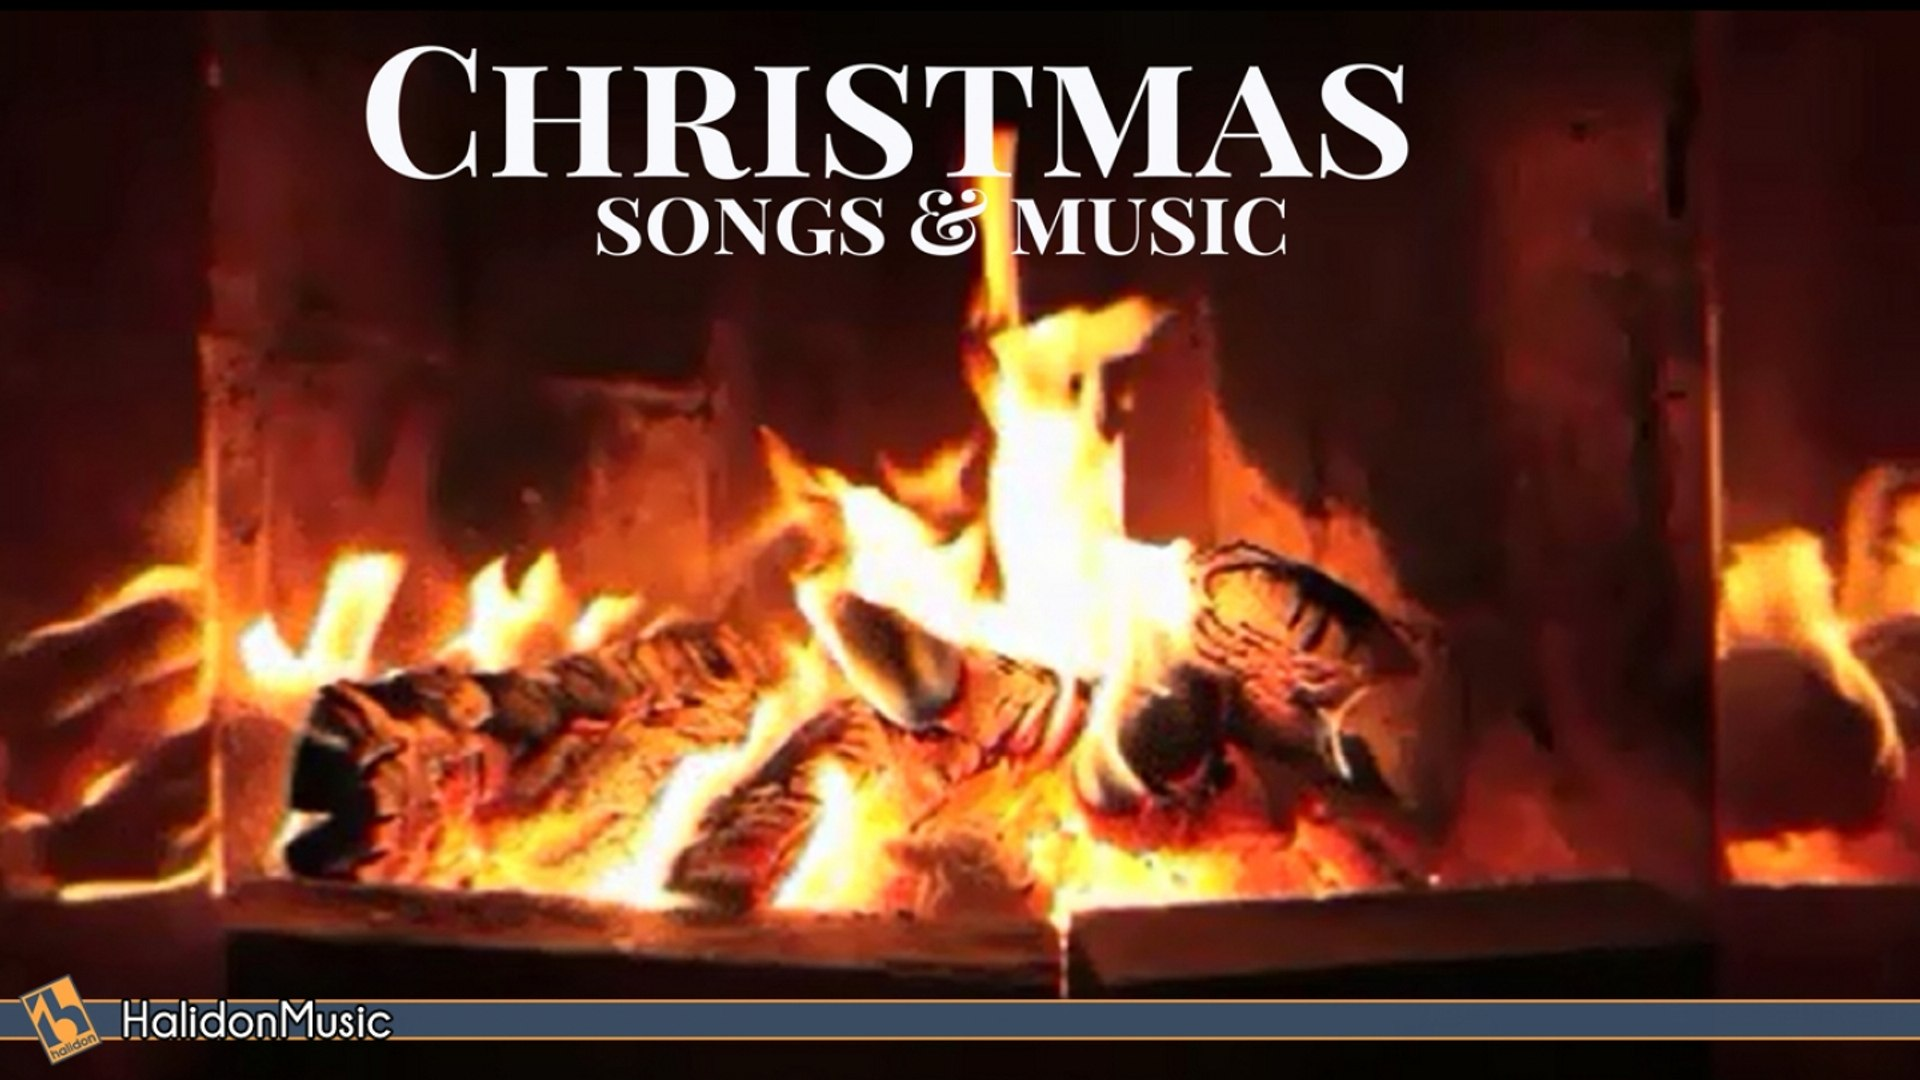 Fireplace Christmas Music.Aa Vv The Best Christmas Songs Carols Instrumental And Classical Music Relaxing Fireplace